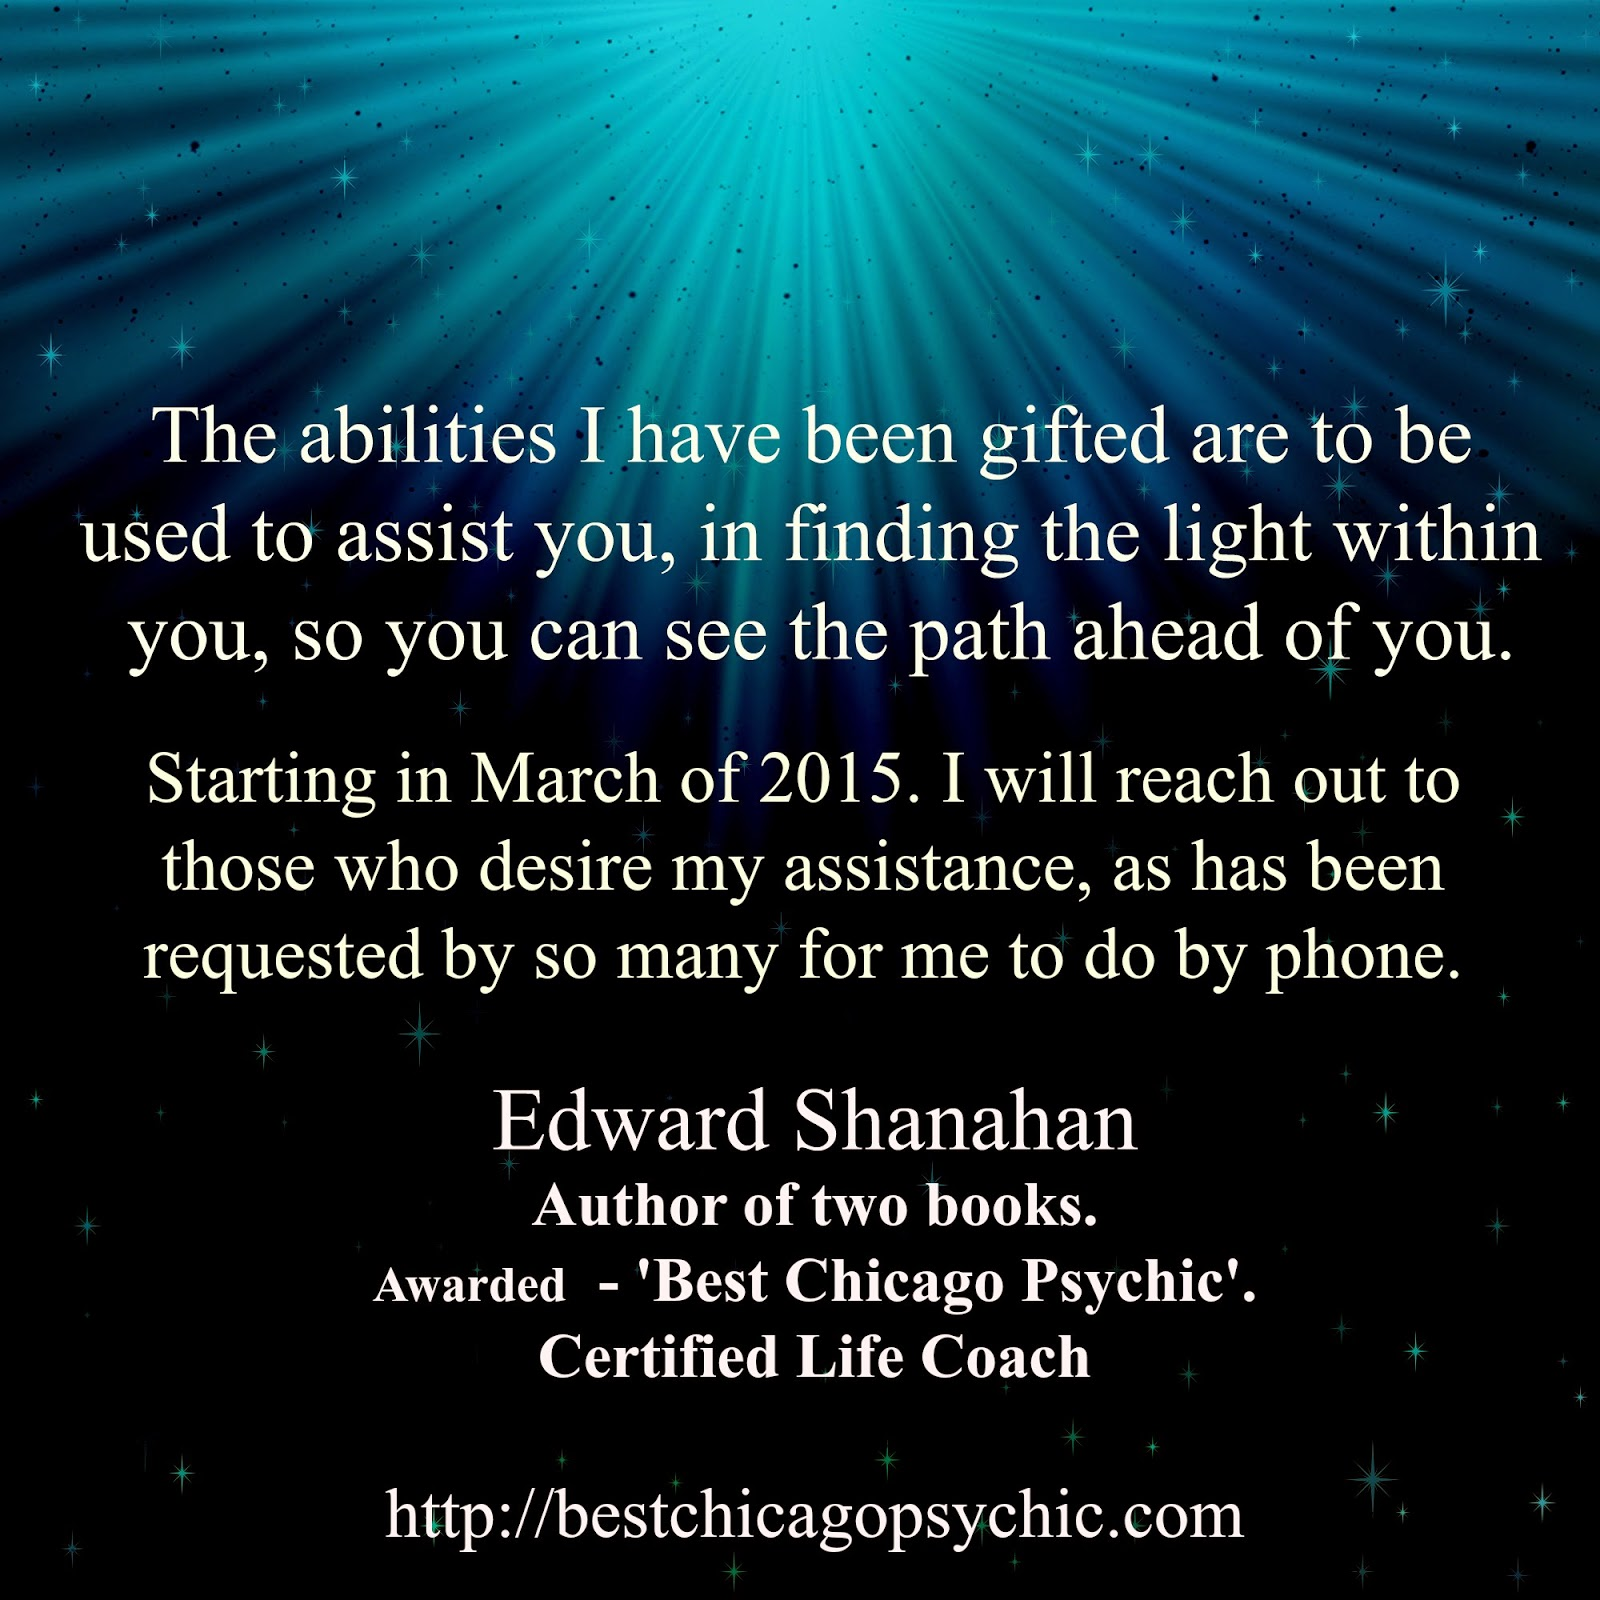 Best Psychic in Chicago award winner offers Psychic Phone Readings.